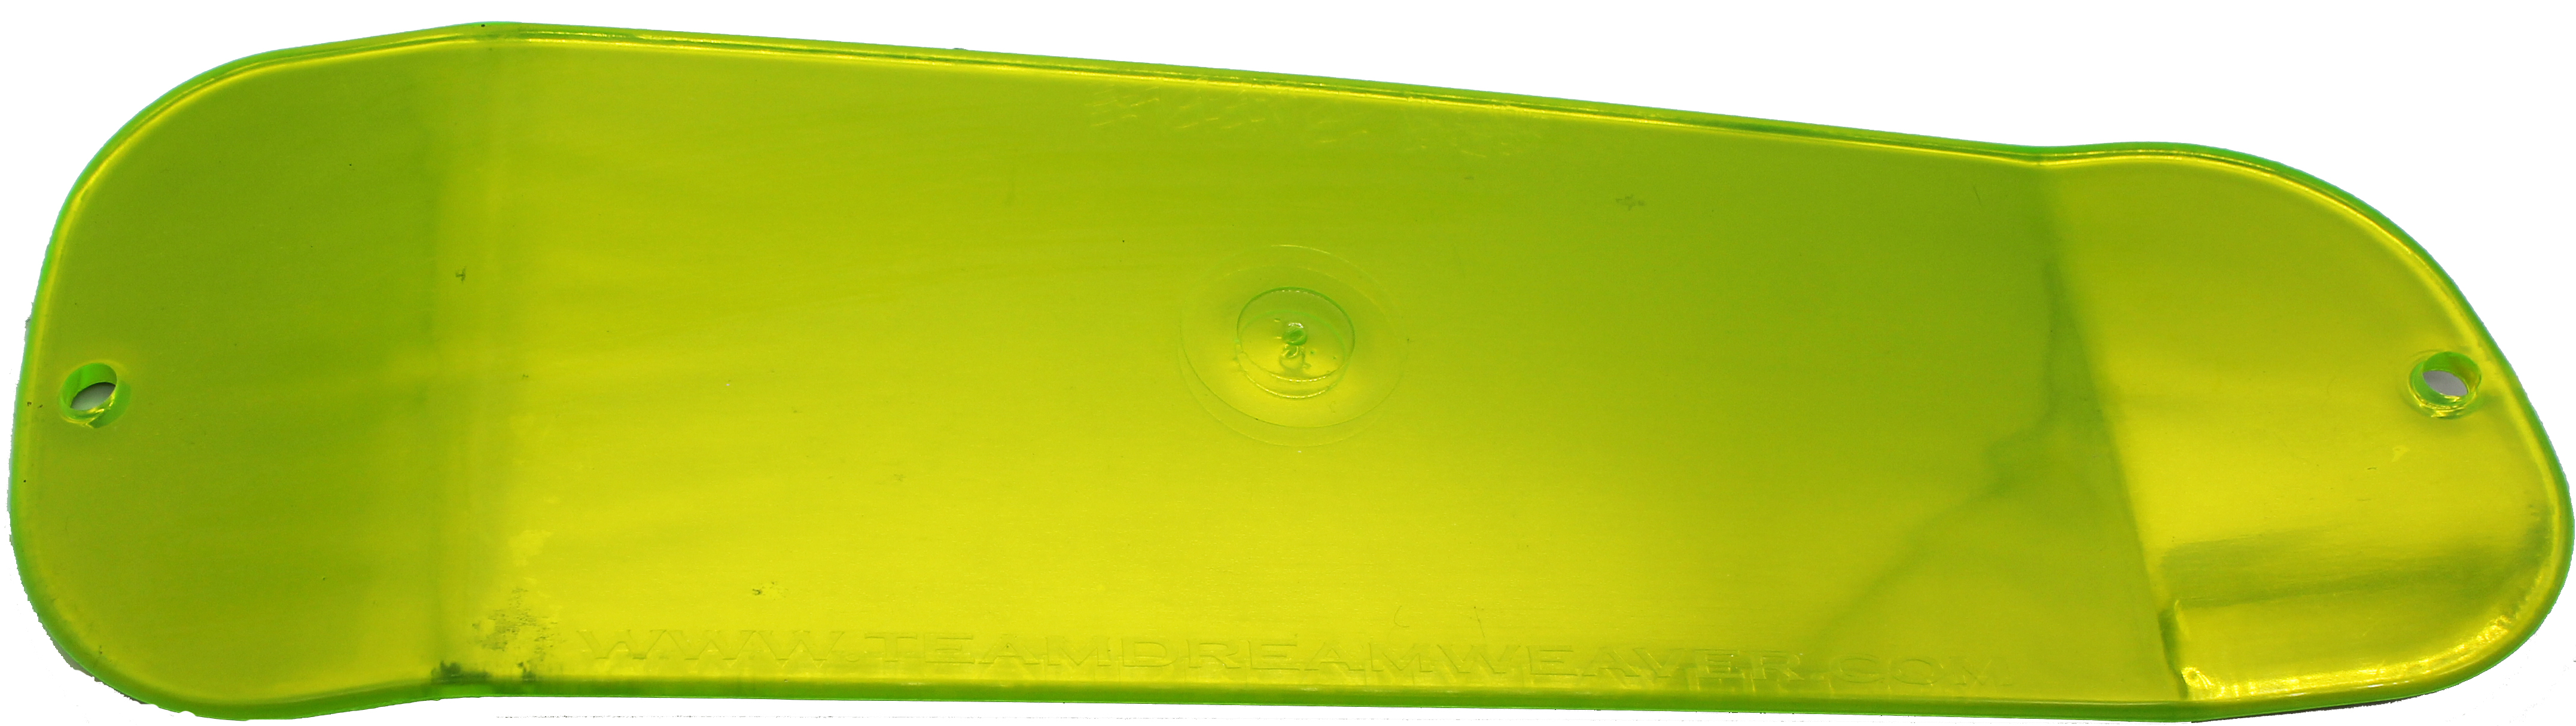 Paddle 11 – Chartreuse/Chrome